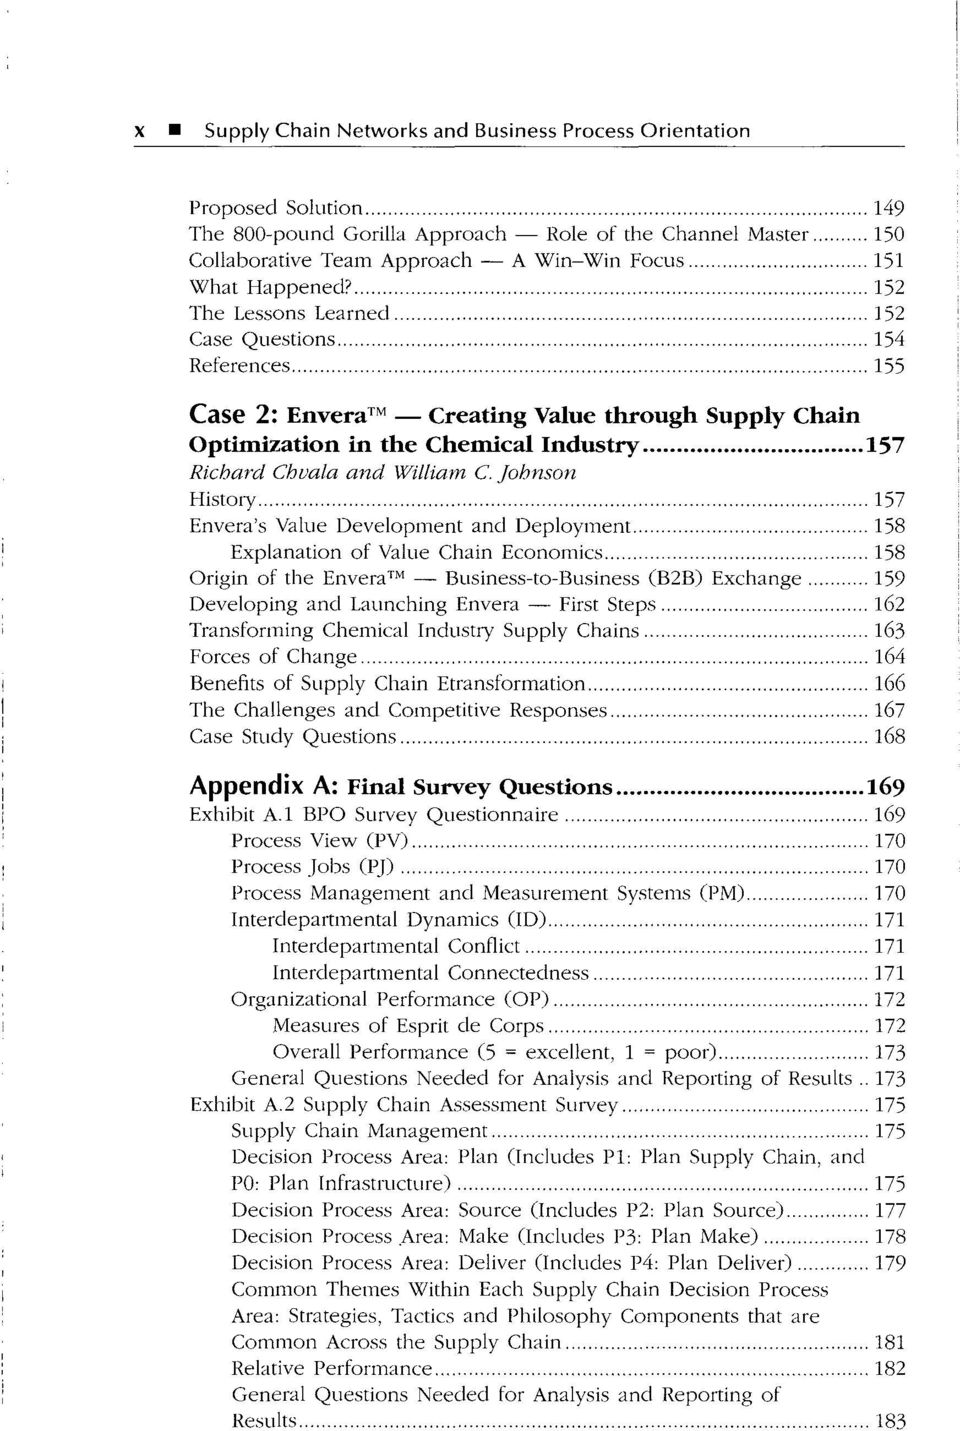 152 The Lessons Learned 152 Case Questions 154 References 155 Case 2: Envera Creating Value through Supply Chain Optimization in the Chemical Industry 157 Richard Chvala and William C, Johnson